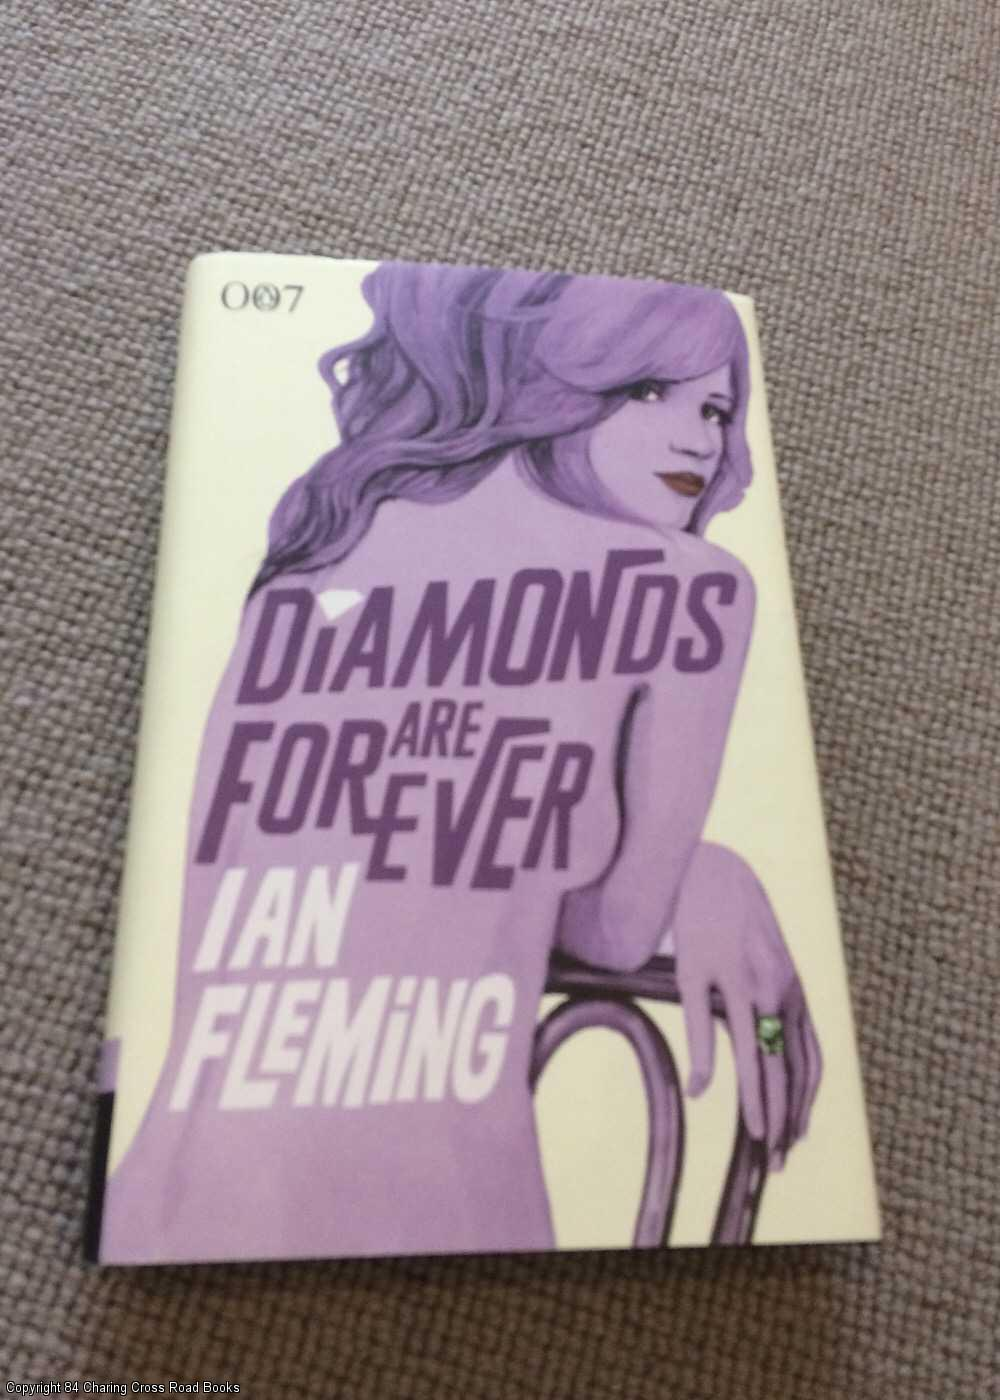 IAN FLEMING - Diamonds are Forever